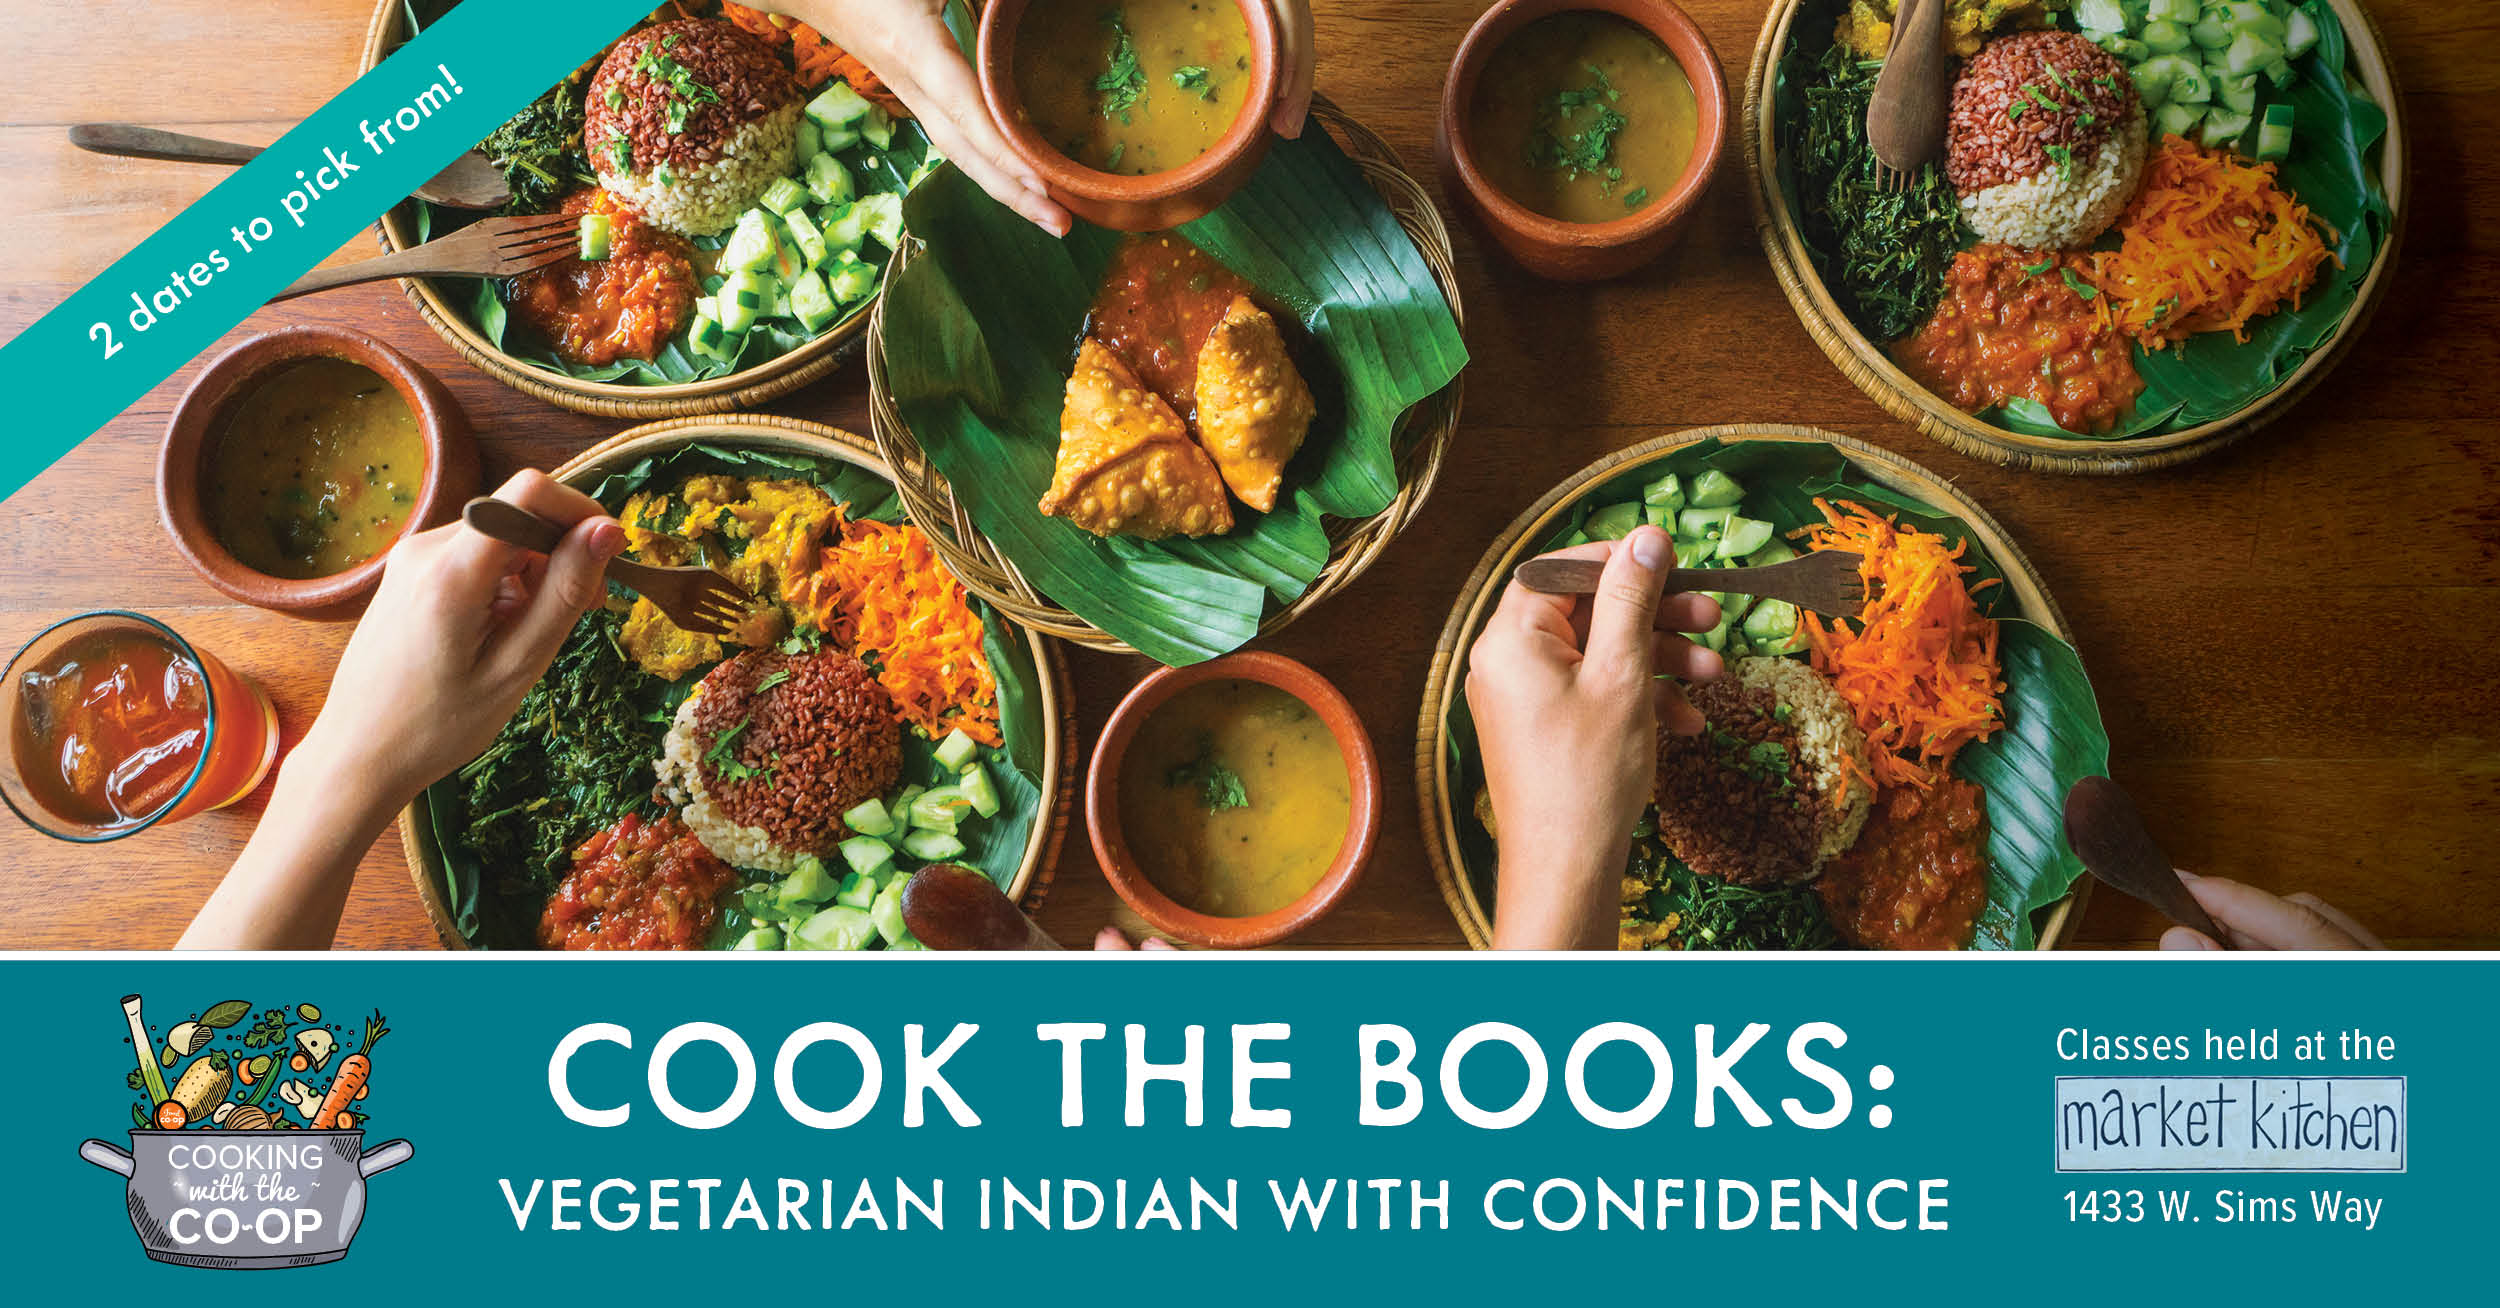 COOK THE BOOKS Veg Indian 2019_FB2.jpg